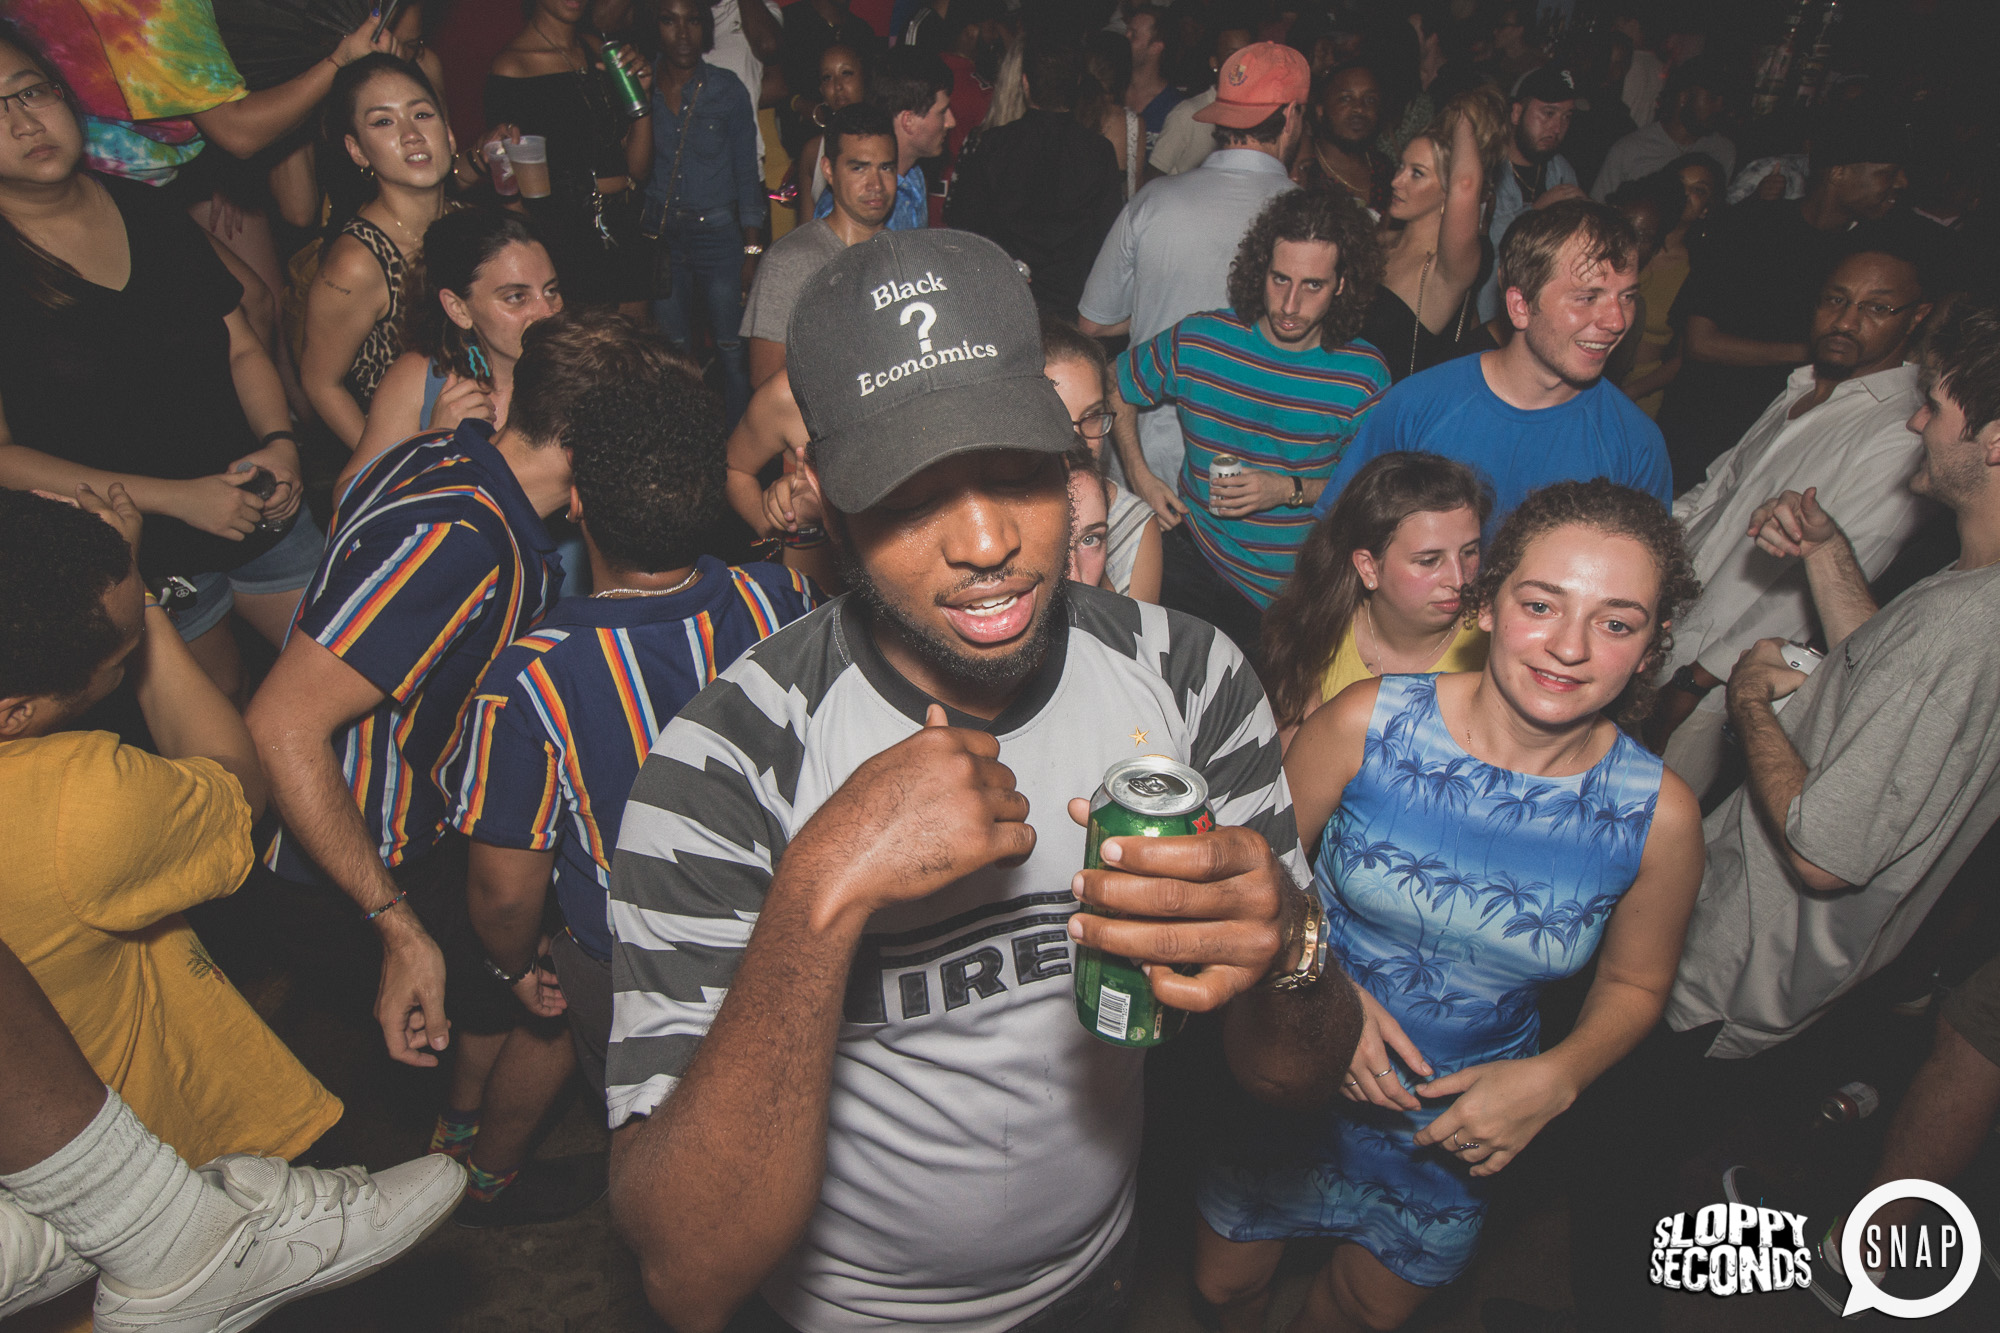 Sloppy Seconds 7.13.19 Oh Snap Kid Colin Boddy Atlanta-125.jpg